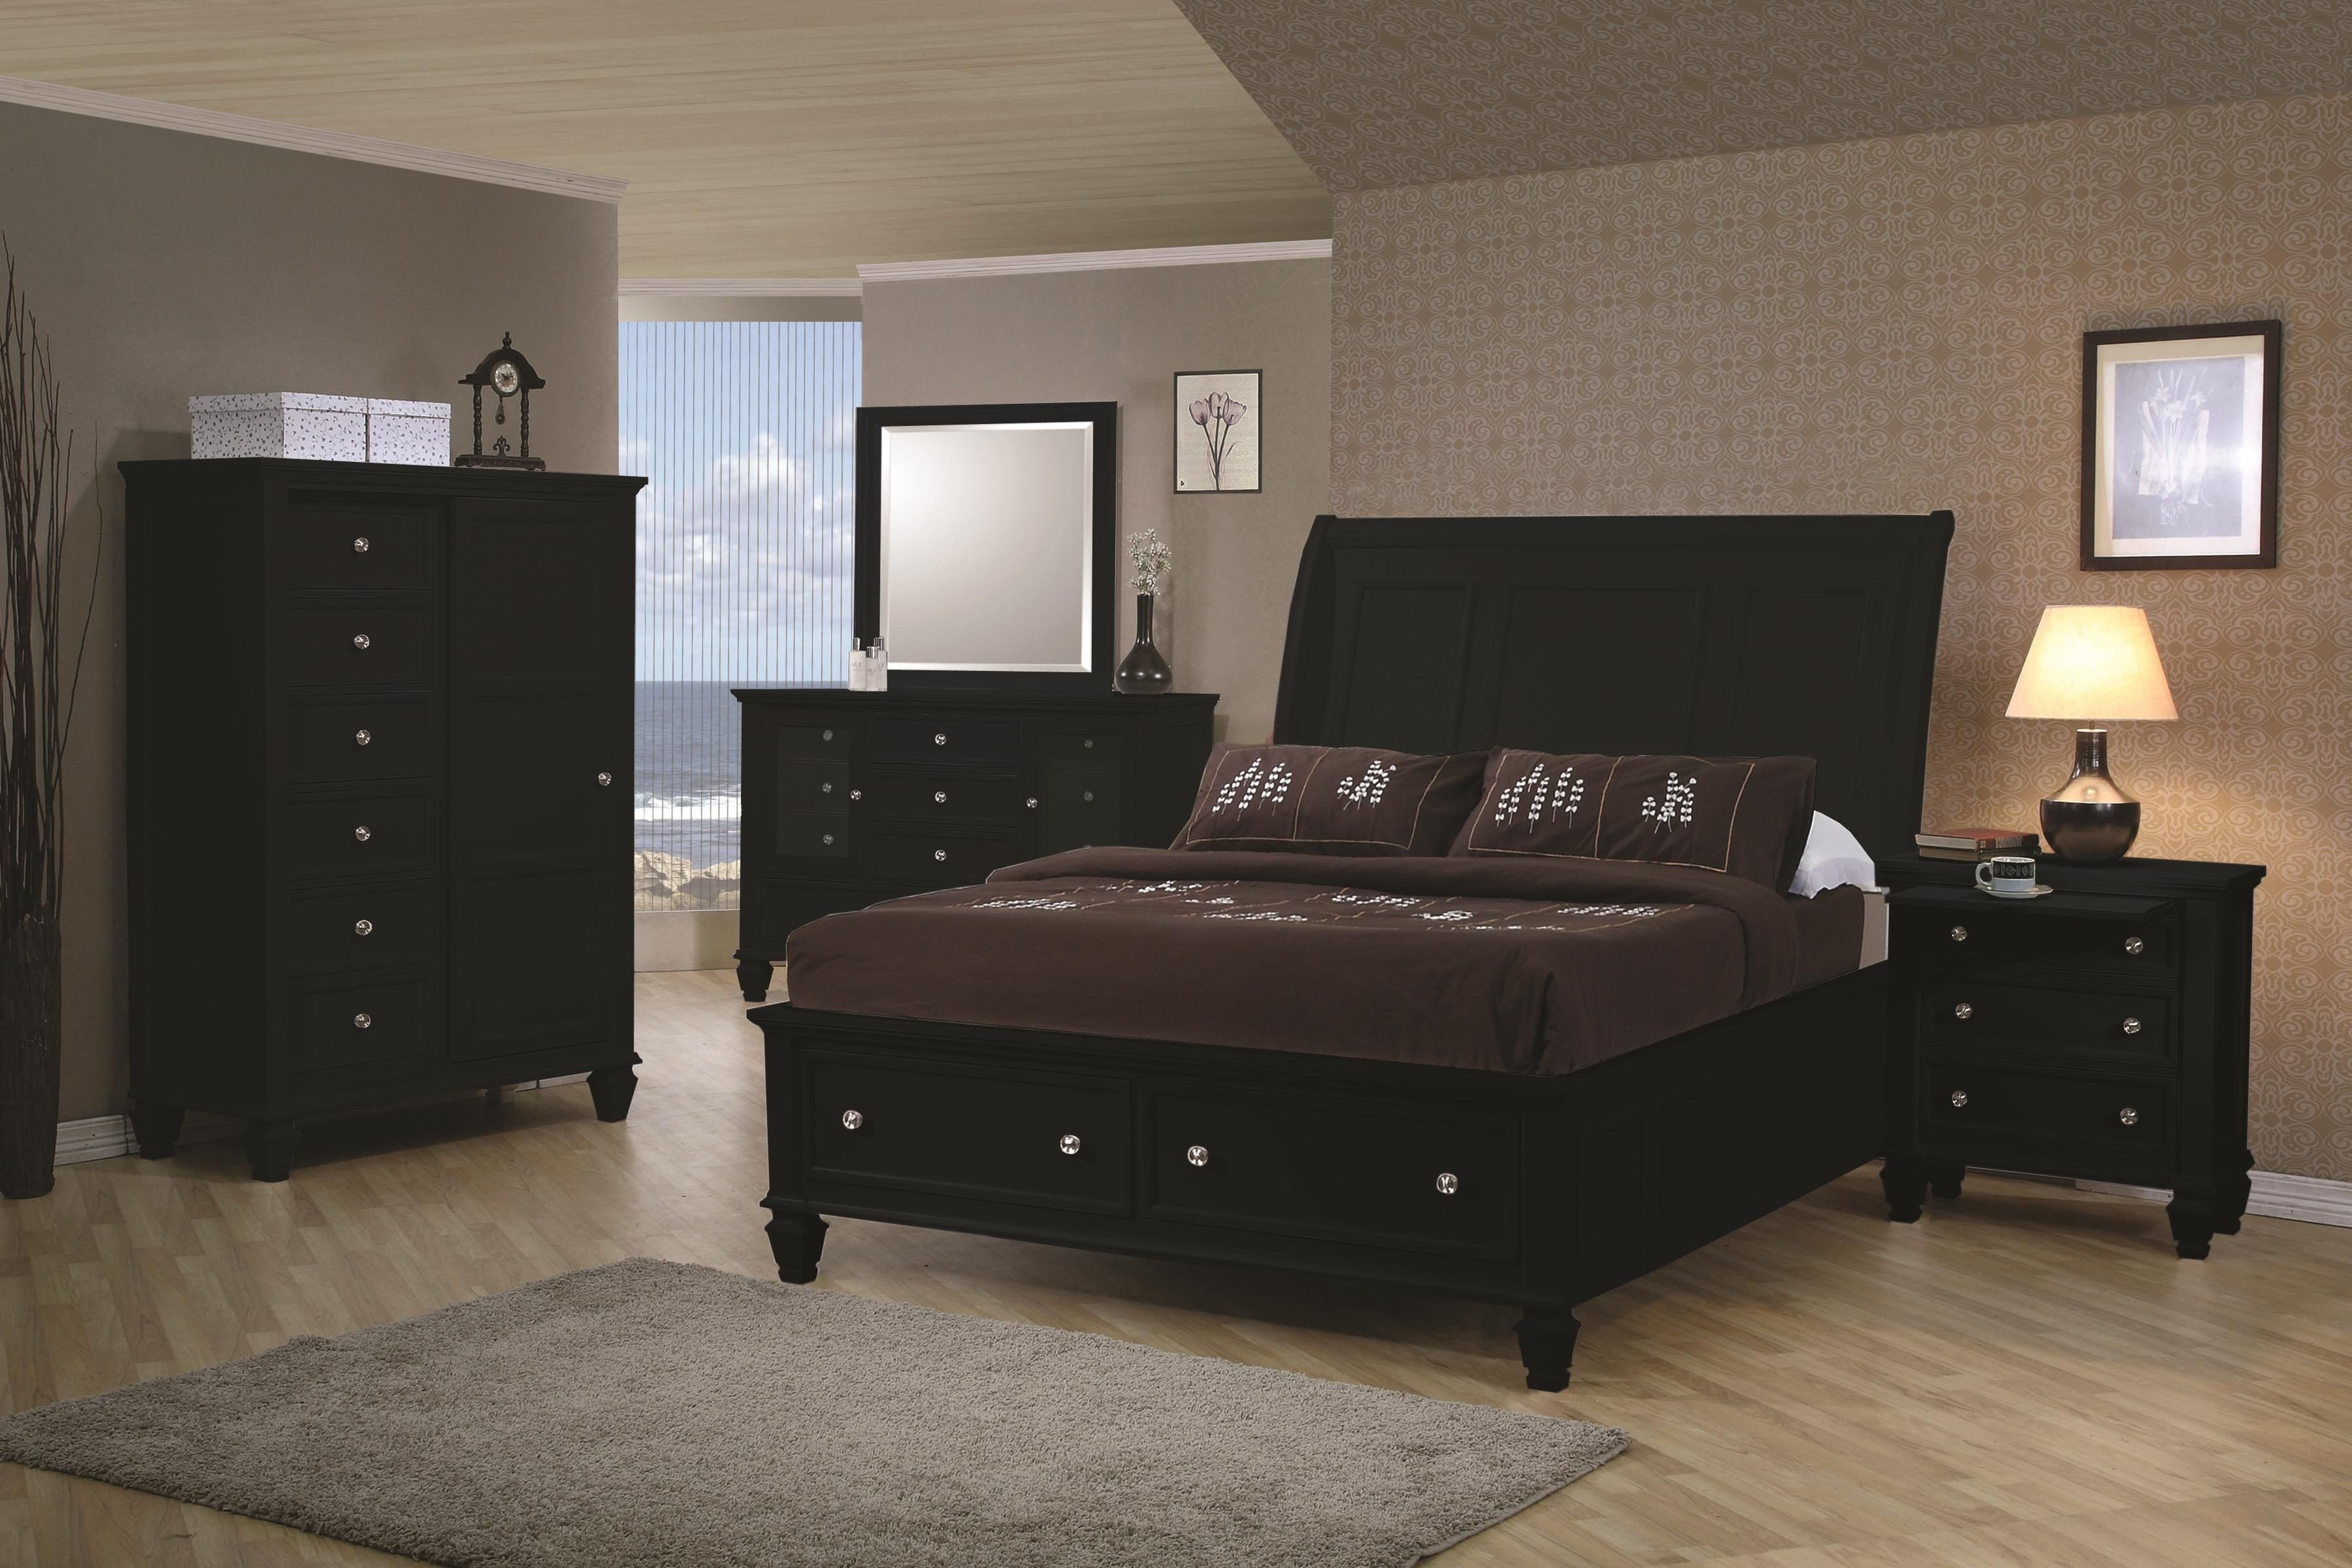 Black Full Size Bedroom Set Best Of Gorgous Transitional Black Bedroom Set with Storage